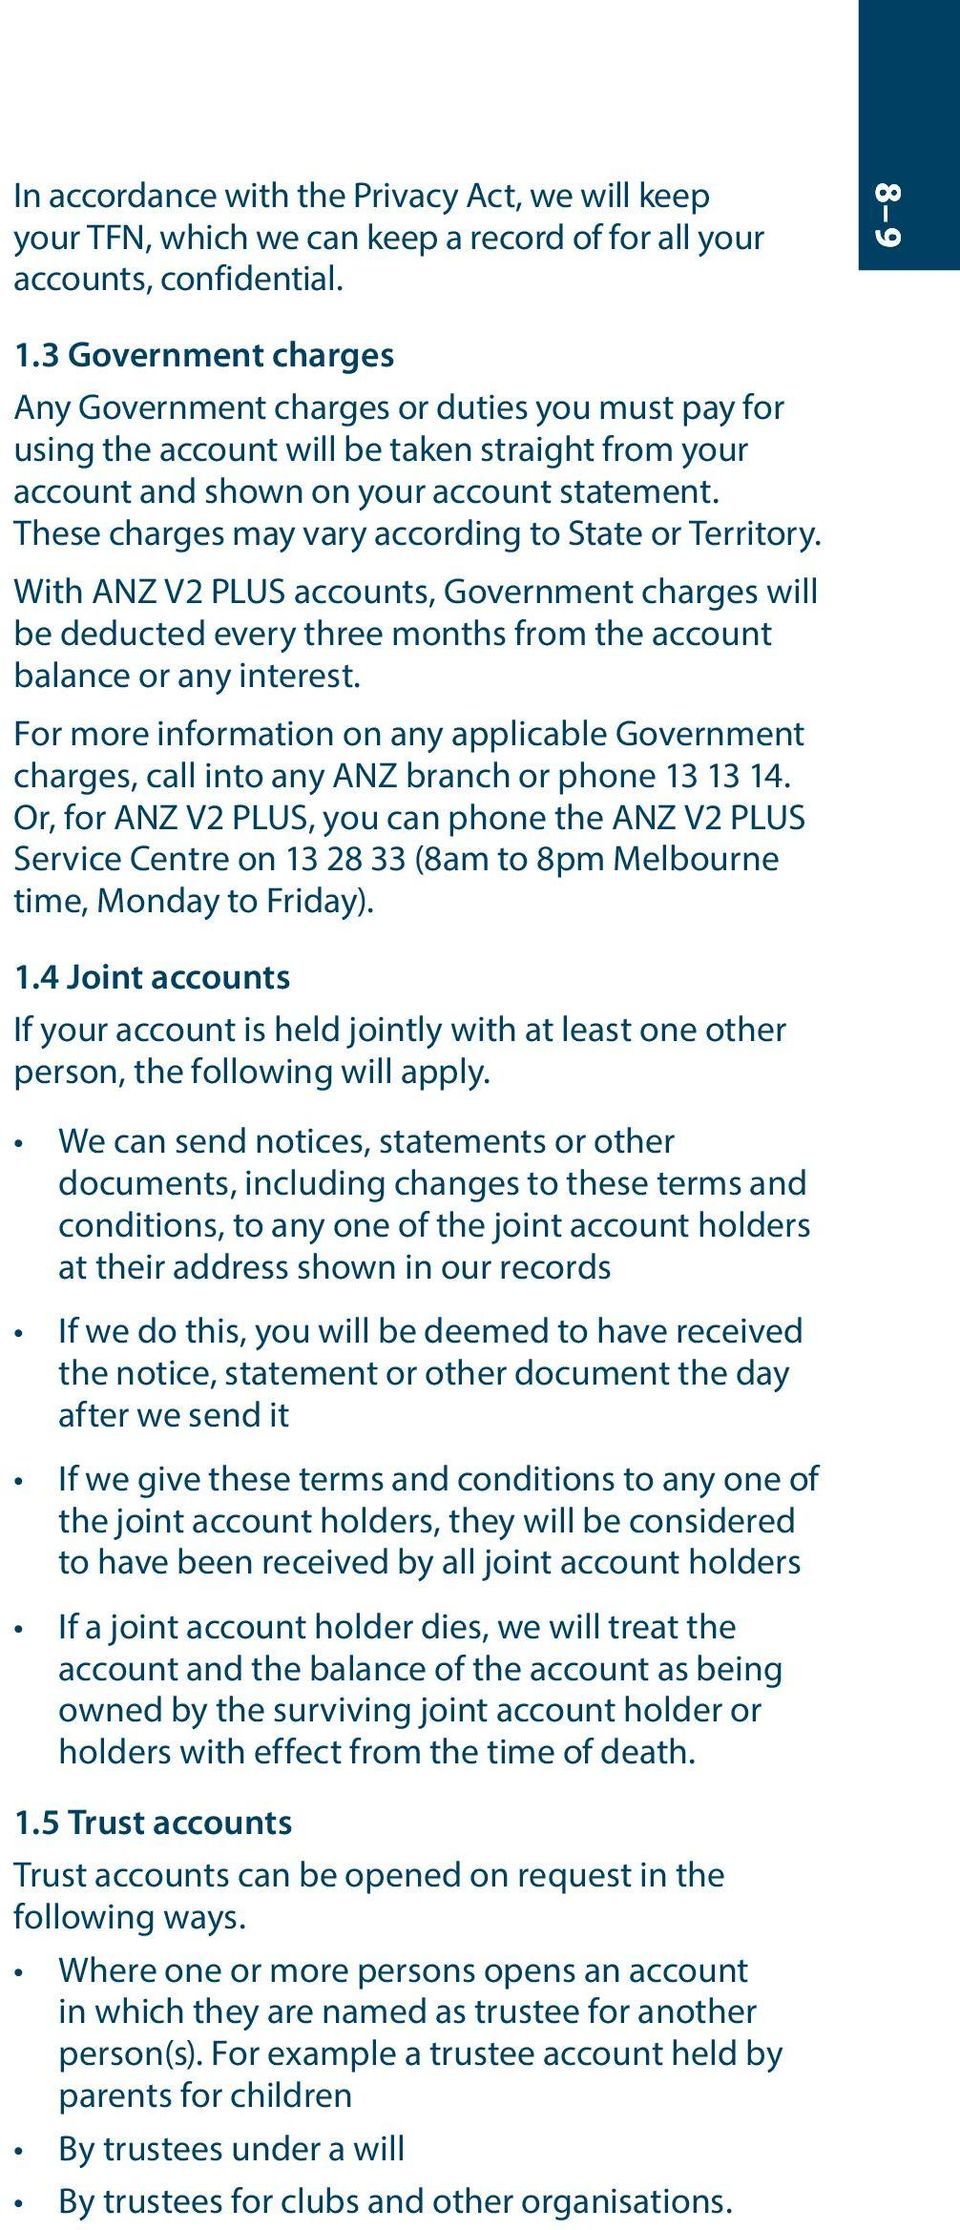 These charges may vary according to State or Territory. With ANZ V2 PLUS accounts, Government charges will be deducted every three months from the account balance or any interest.